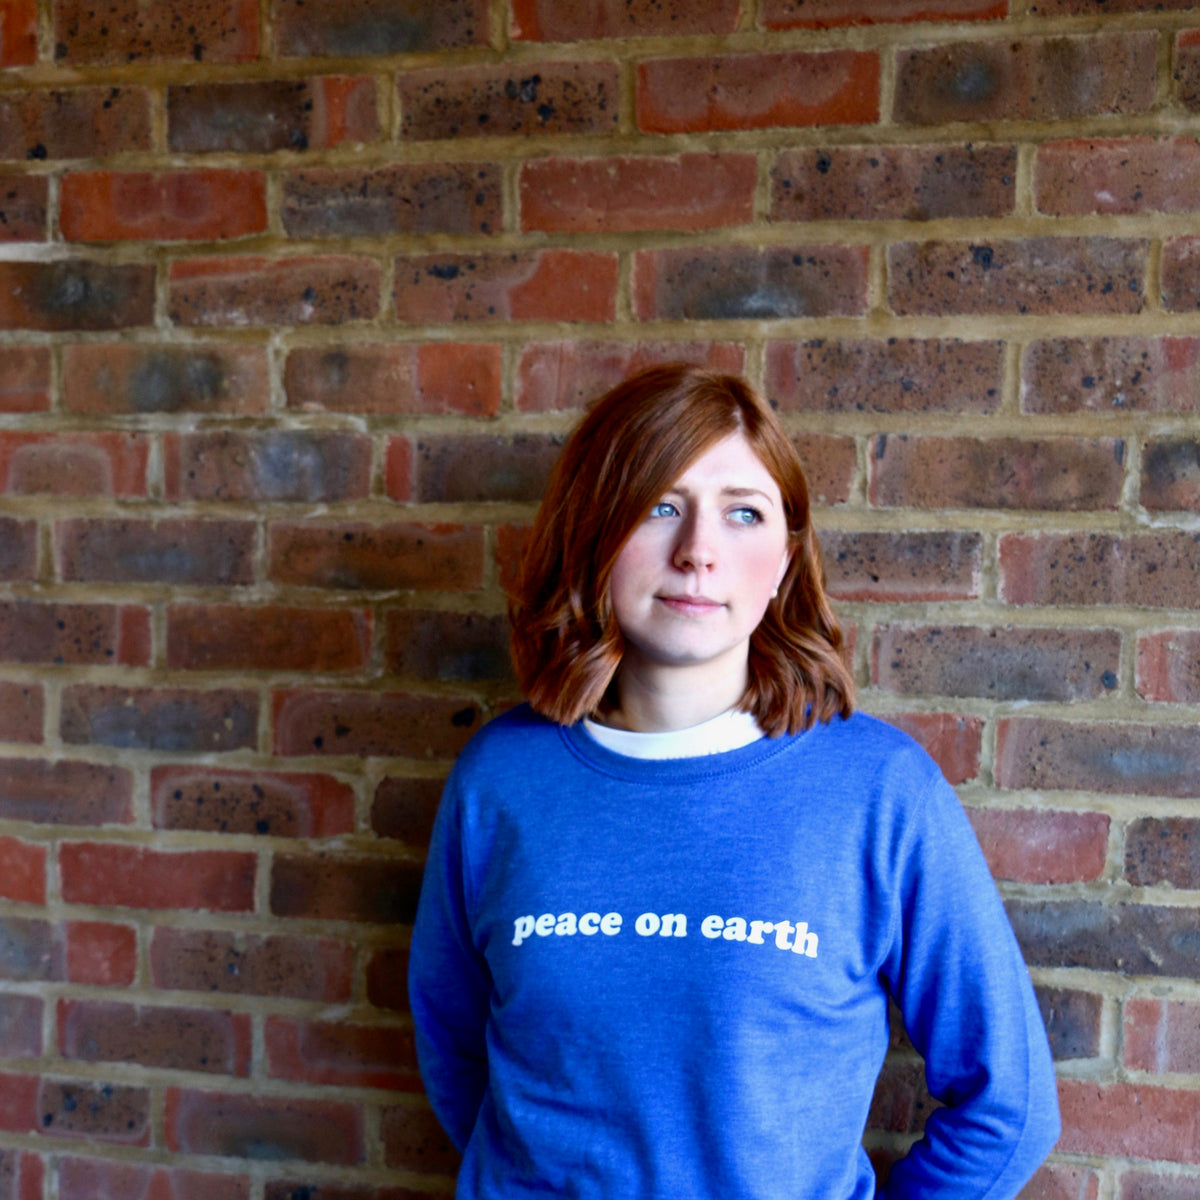 Peace On Earth Screen Printed Sweatshirt - a Unique gift and original gift from Auntie Mims ideal for Christmas